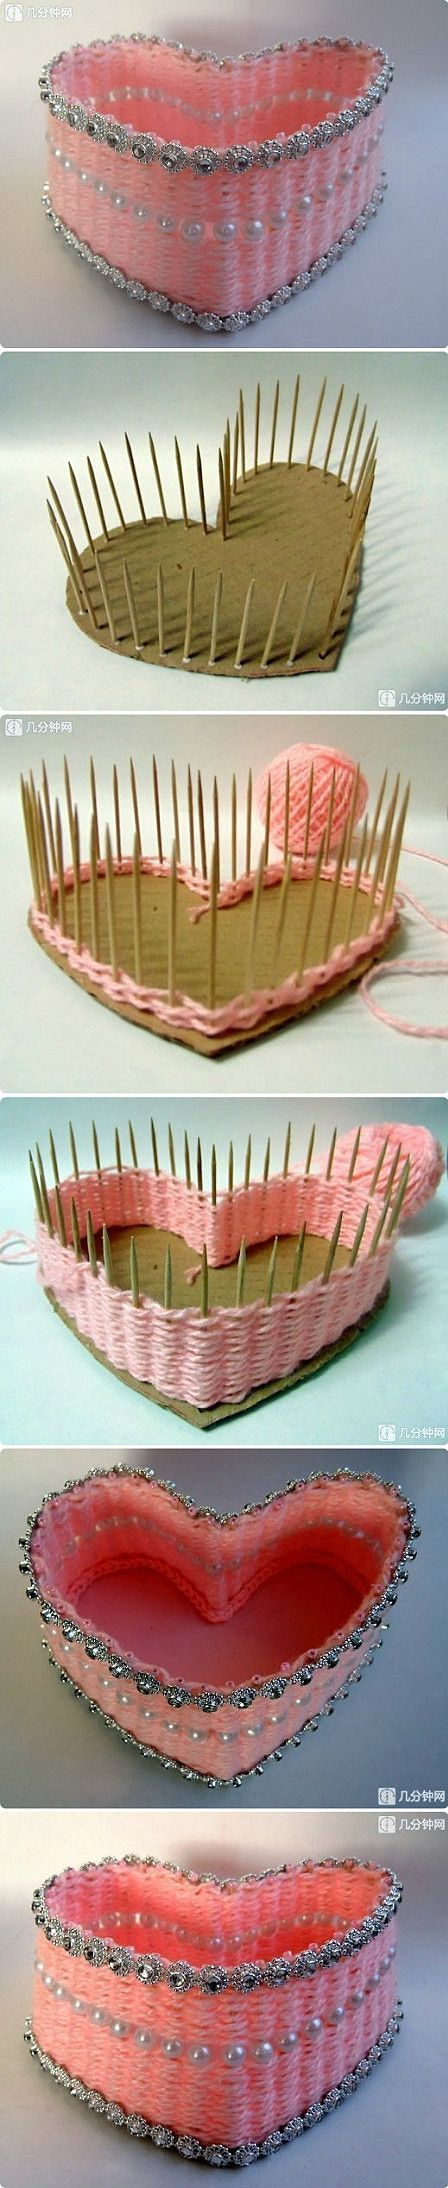 heart shaped box with yarn: